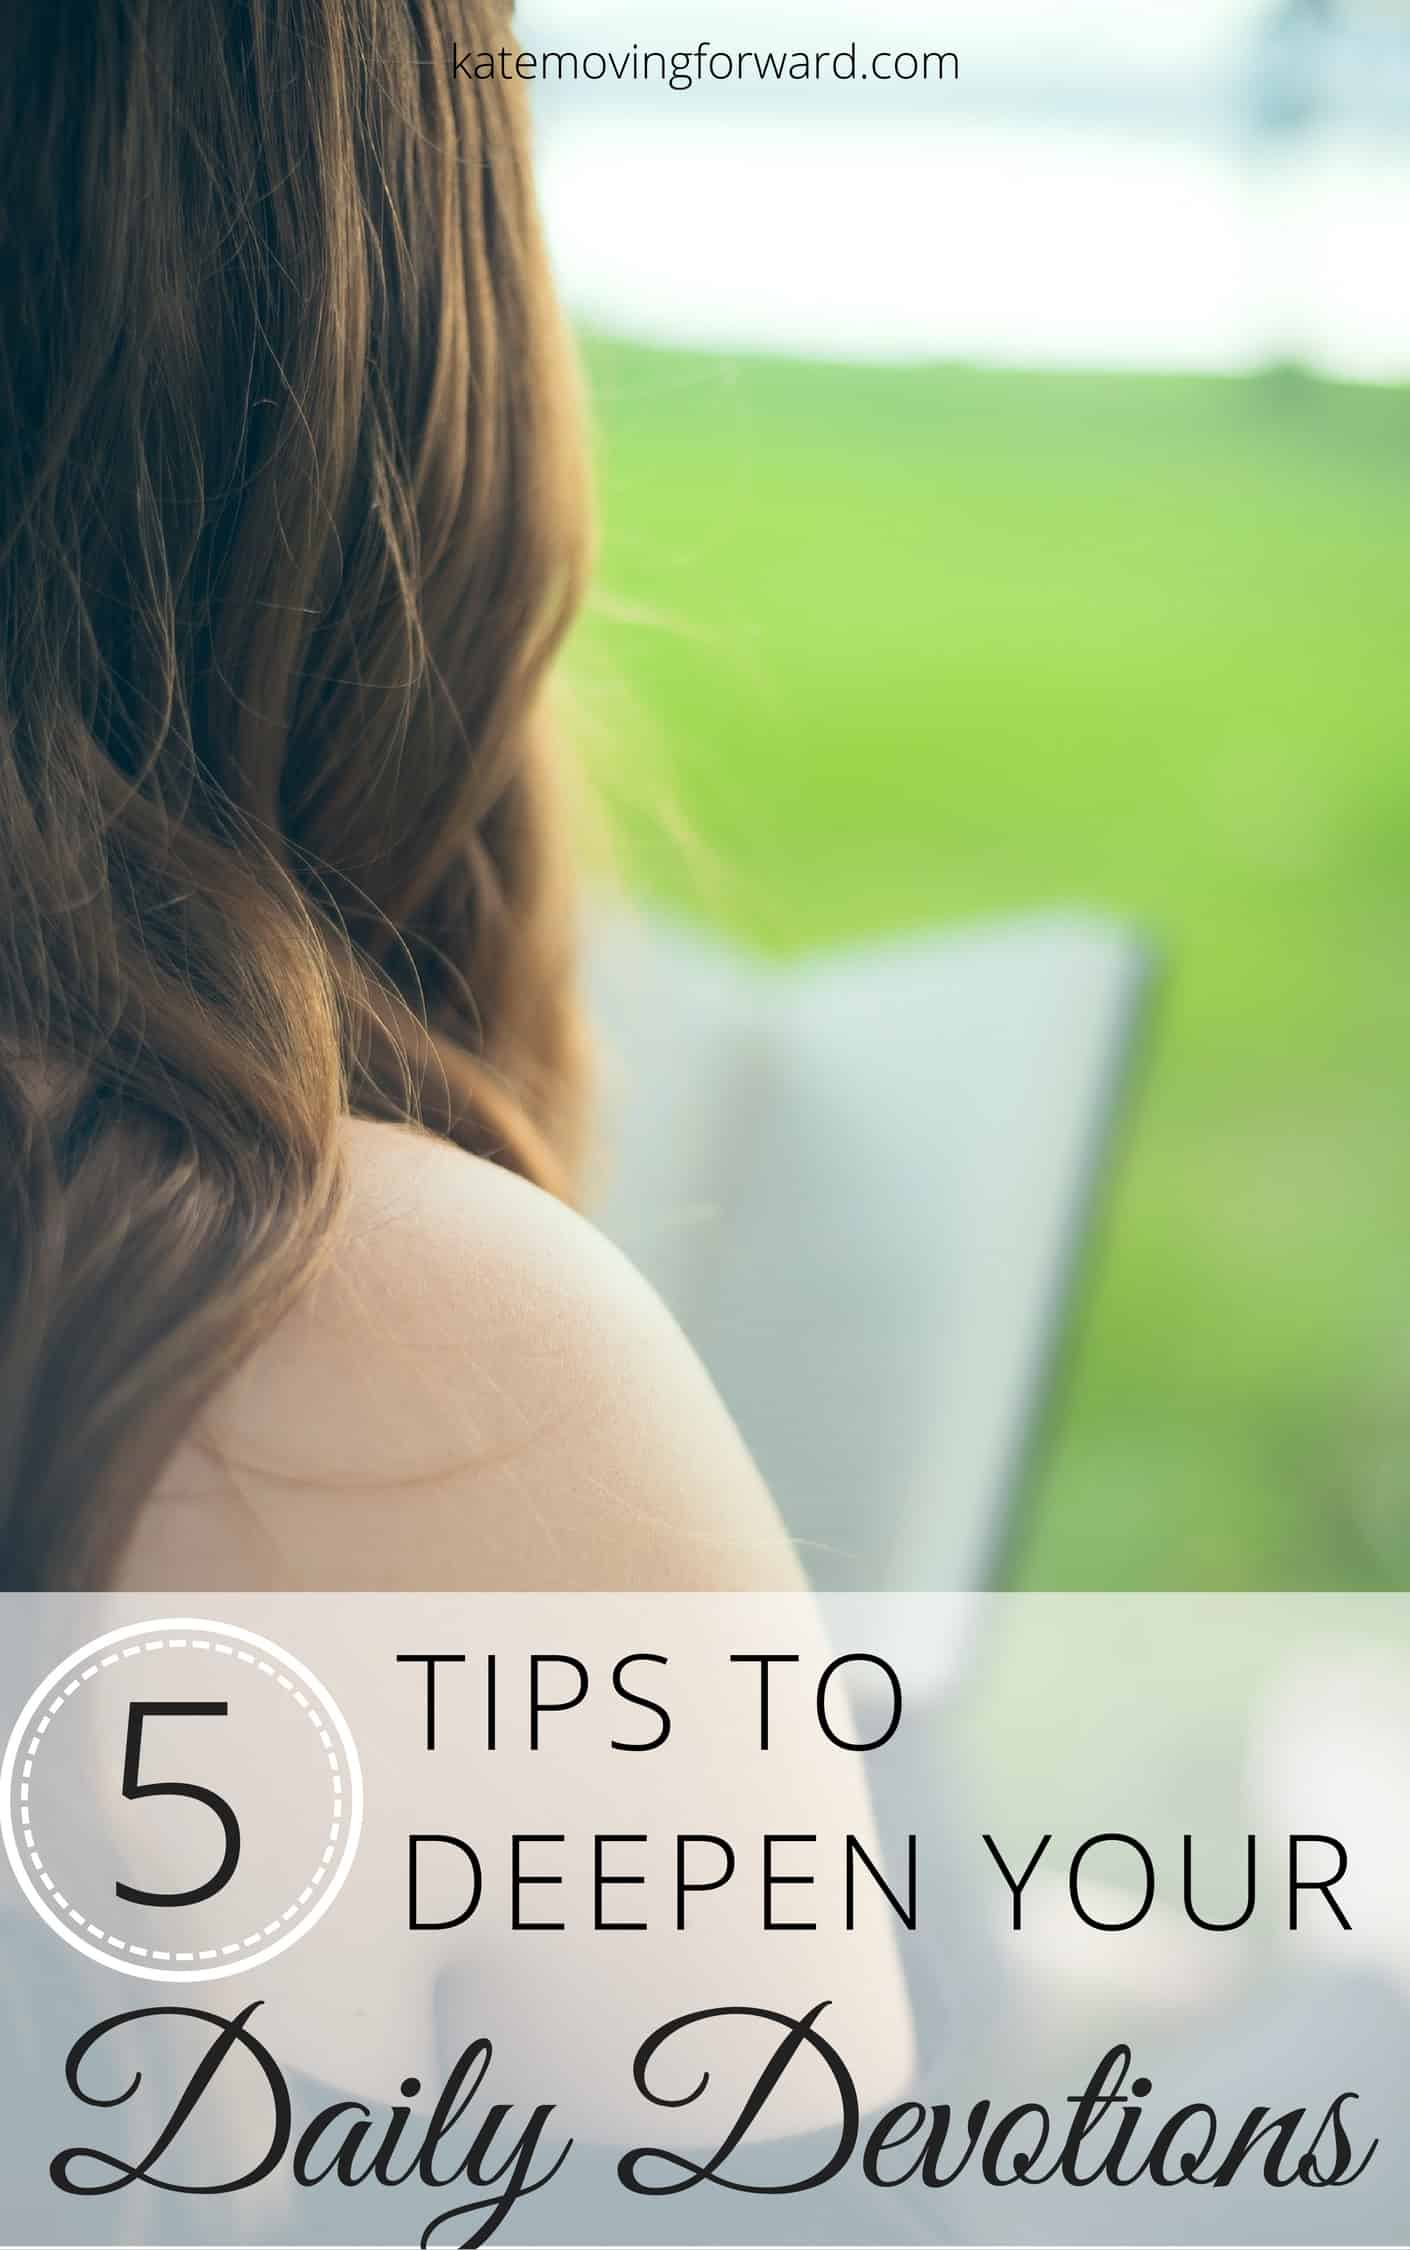 5 Tips to Deepen Your Daily Devotions